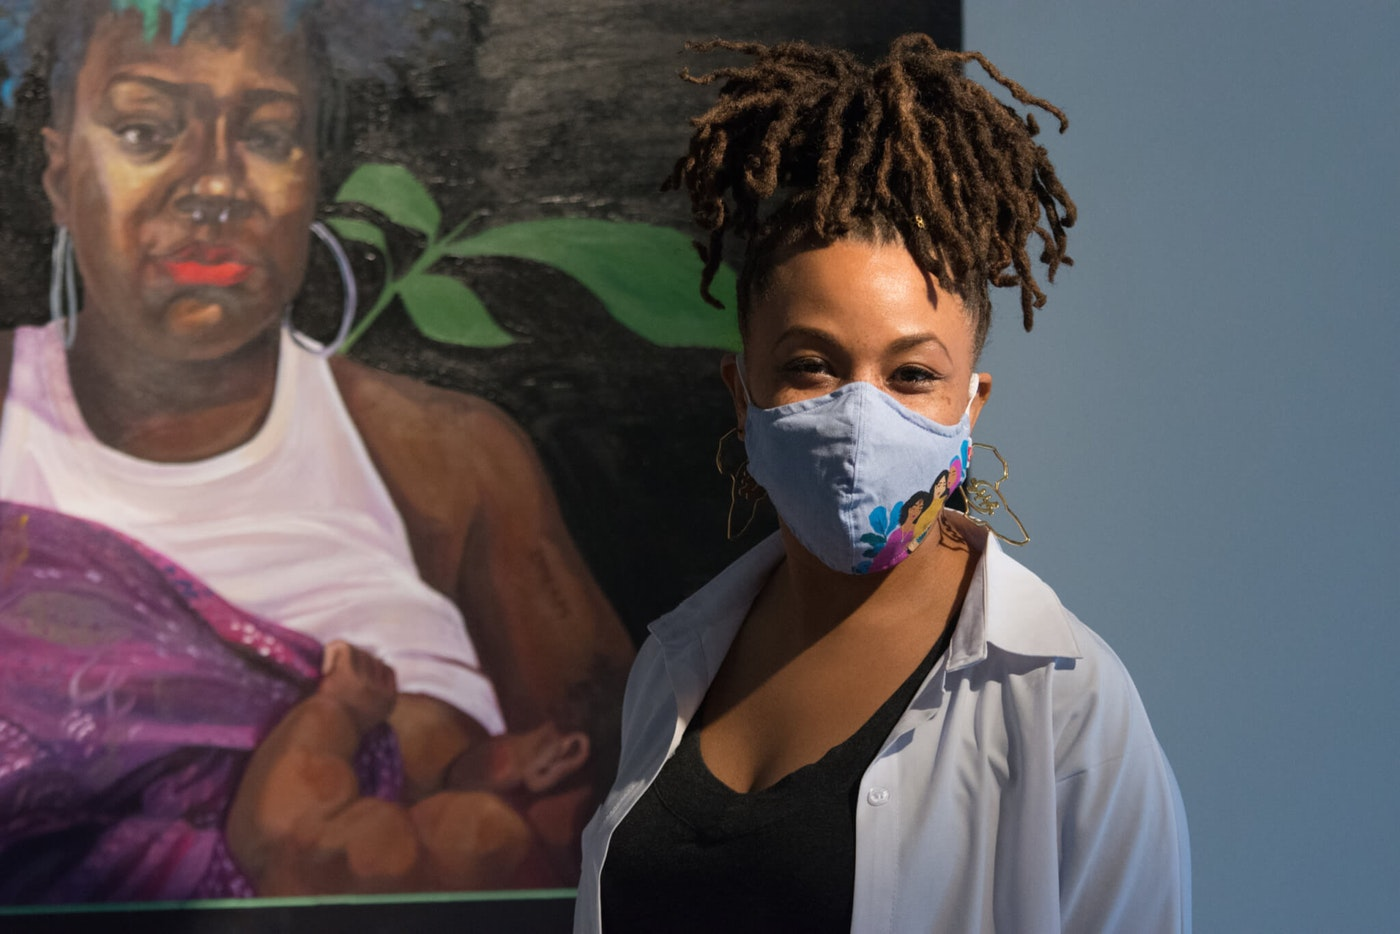 """Detroit artist and muralist Sydney G. James poses in front of one of the pieces from """"Watch Me Work—Portraits of Self"""" series, currently on exhibition at the M Contemporary Art Gallery in Ferndale."""